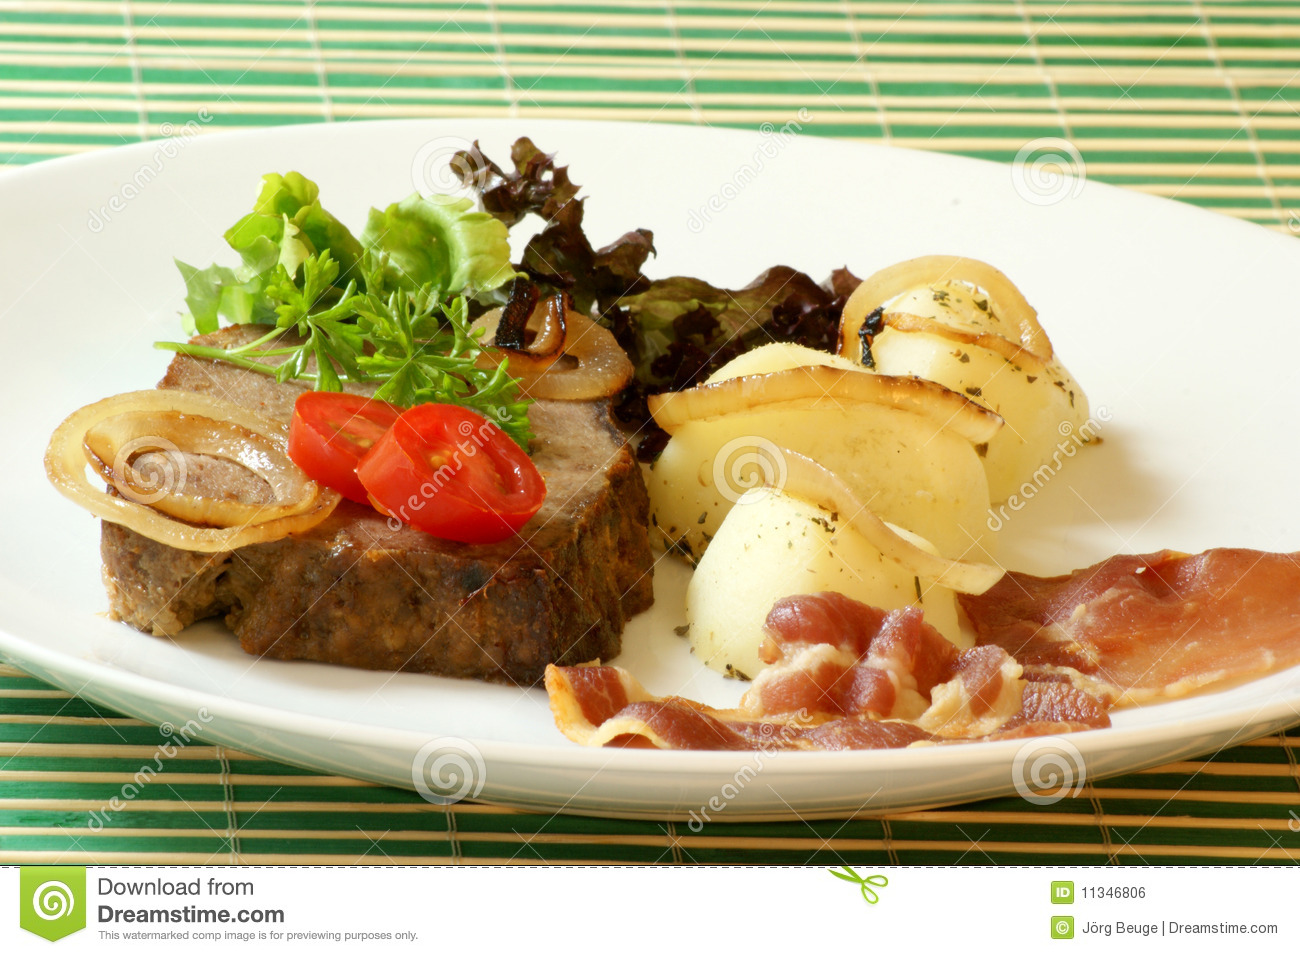 Sliced Meat Loaf With Bacon On A Plate Royalty Free Stock Image